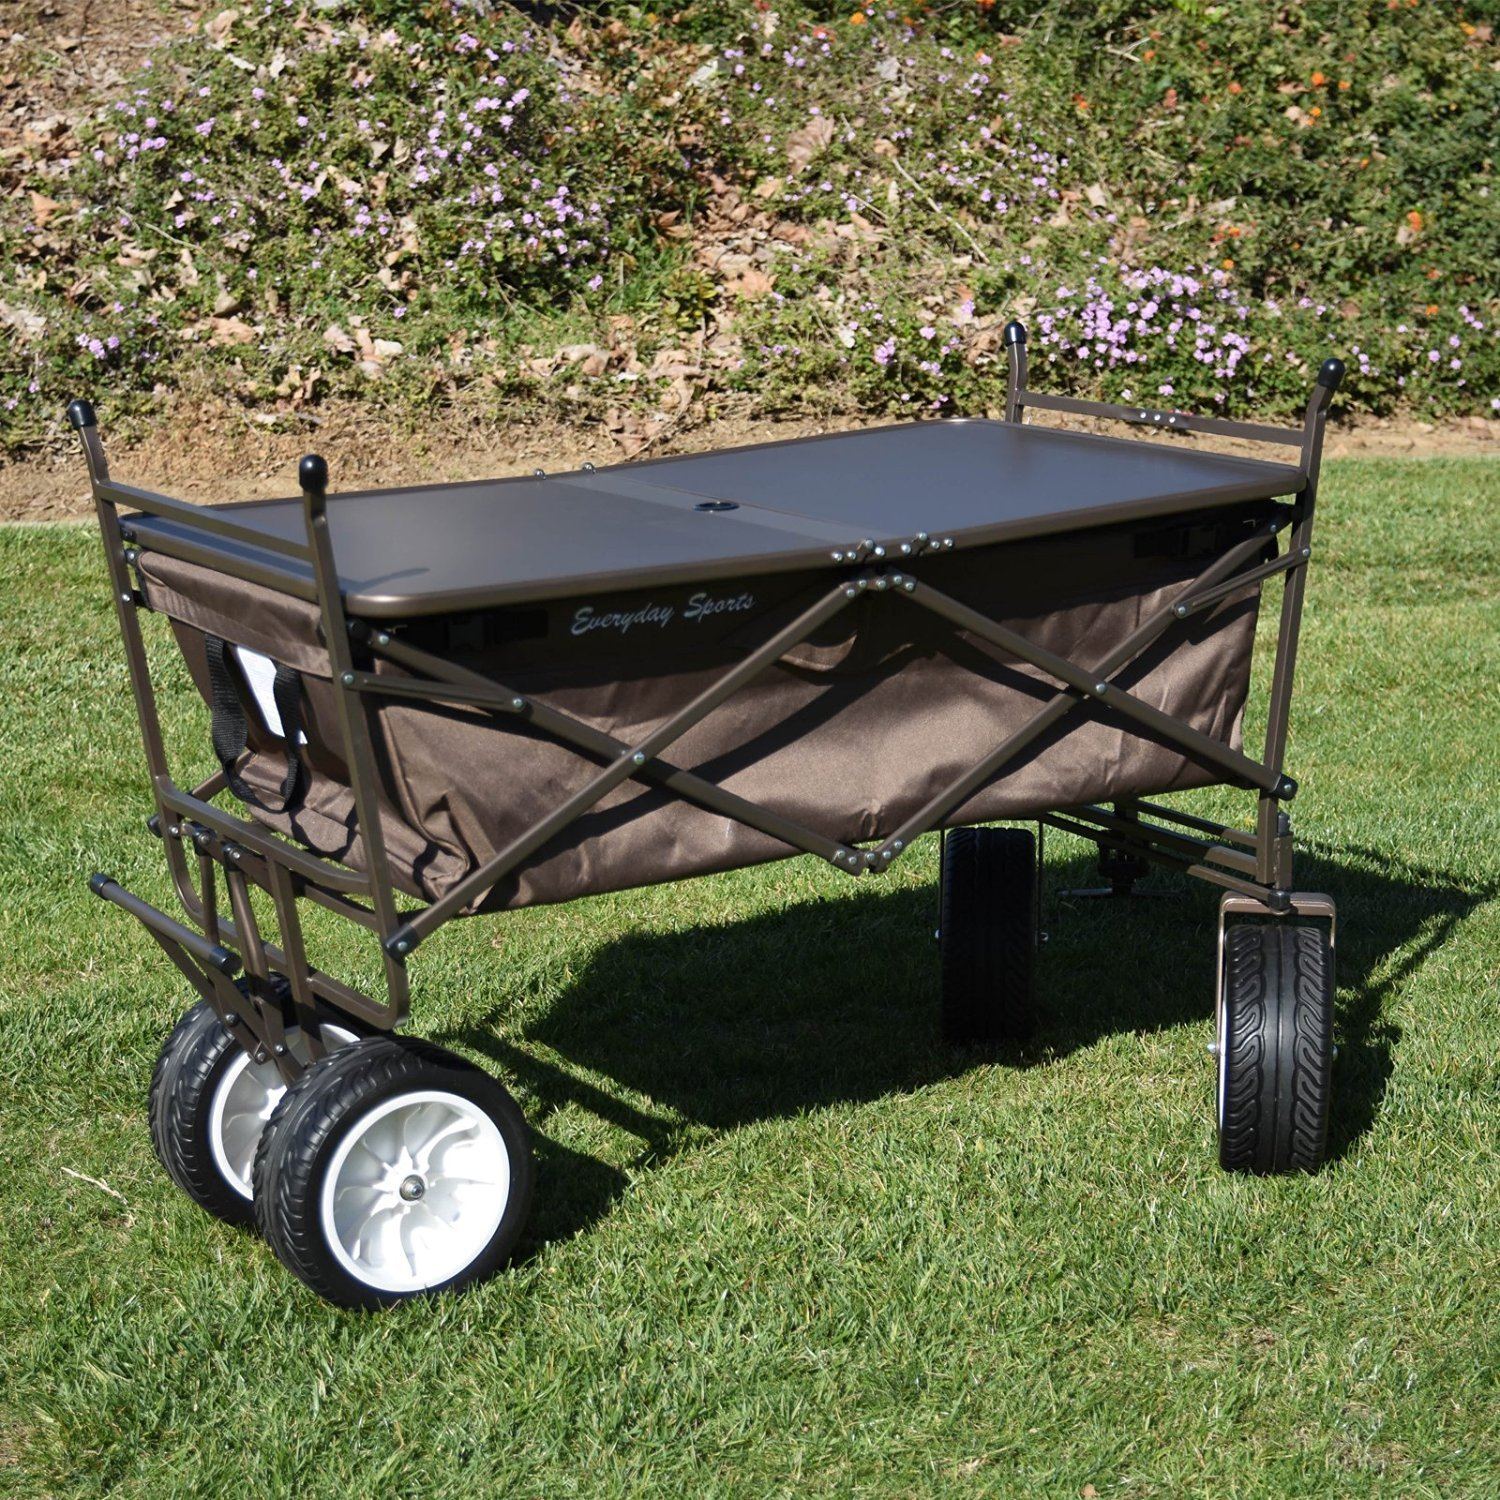 Everyday Sports Collapsible Folding Wagon